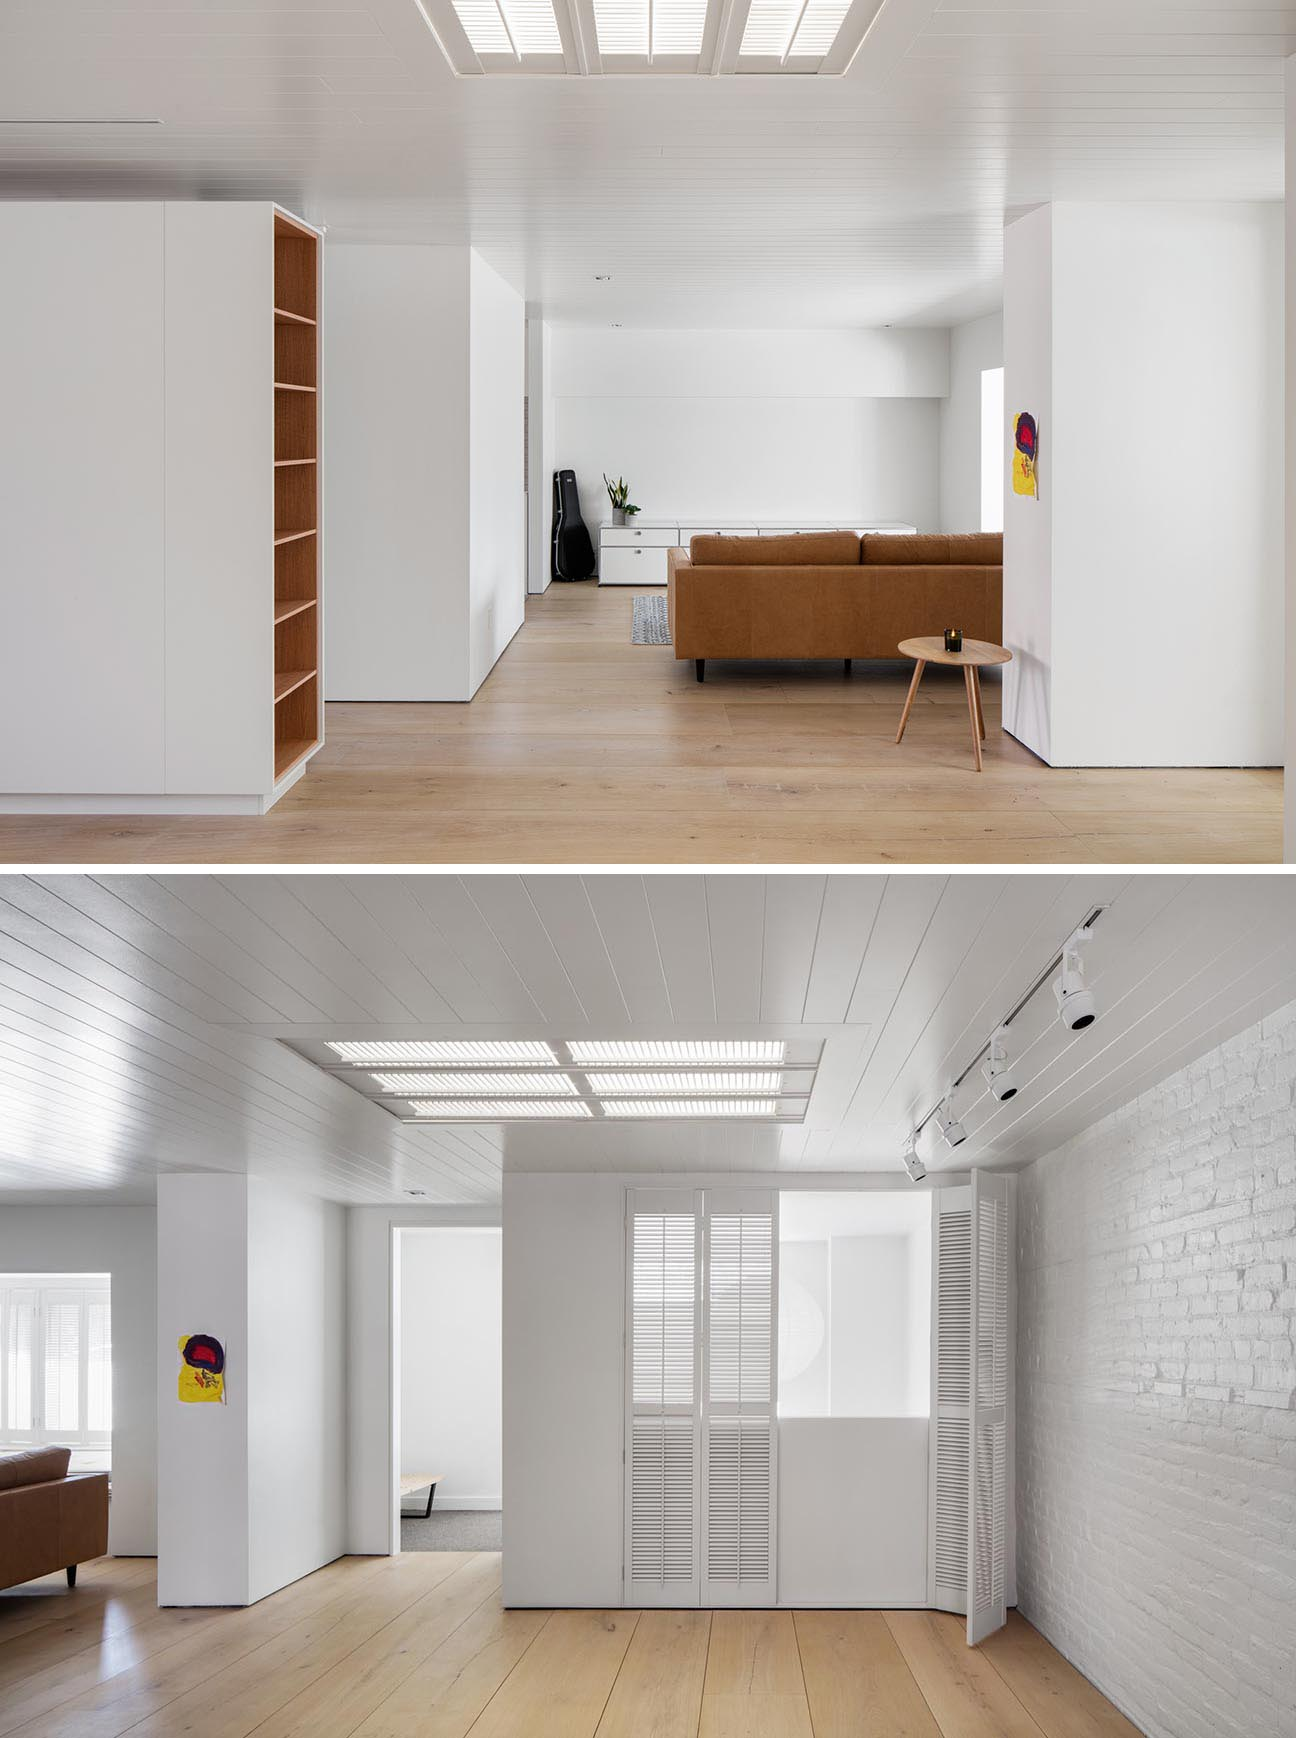 A modern photography agency with white walls, wood floors, and painted brick.